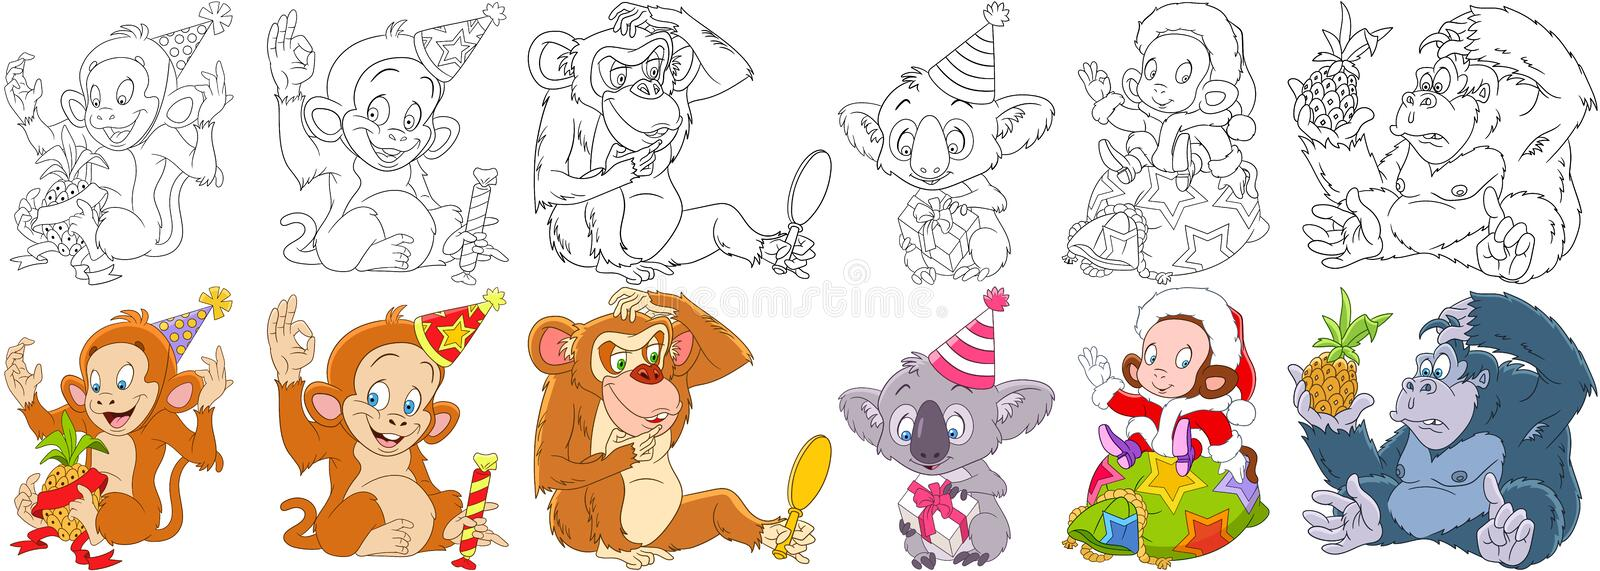 Cartoon monkey set royalty free stock images